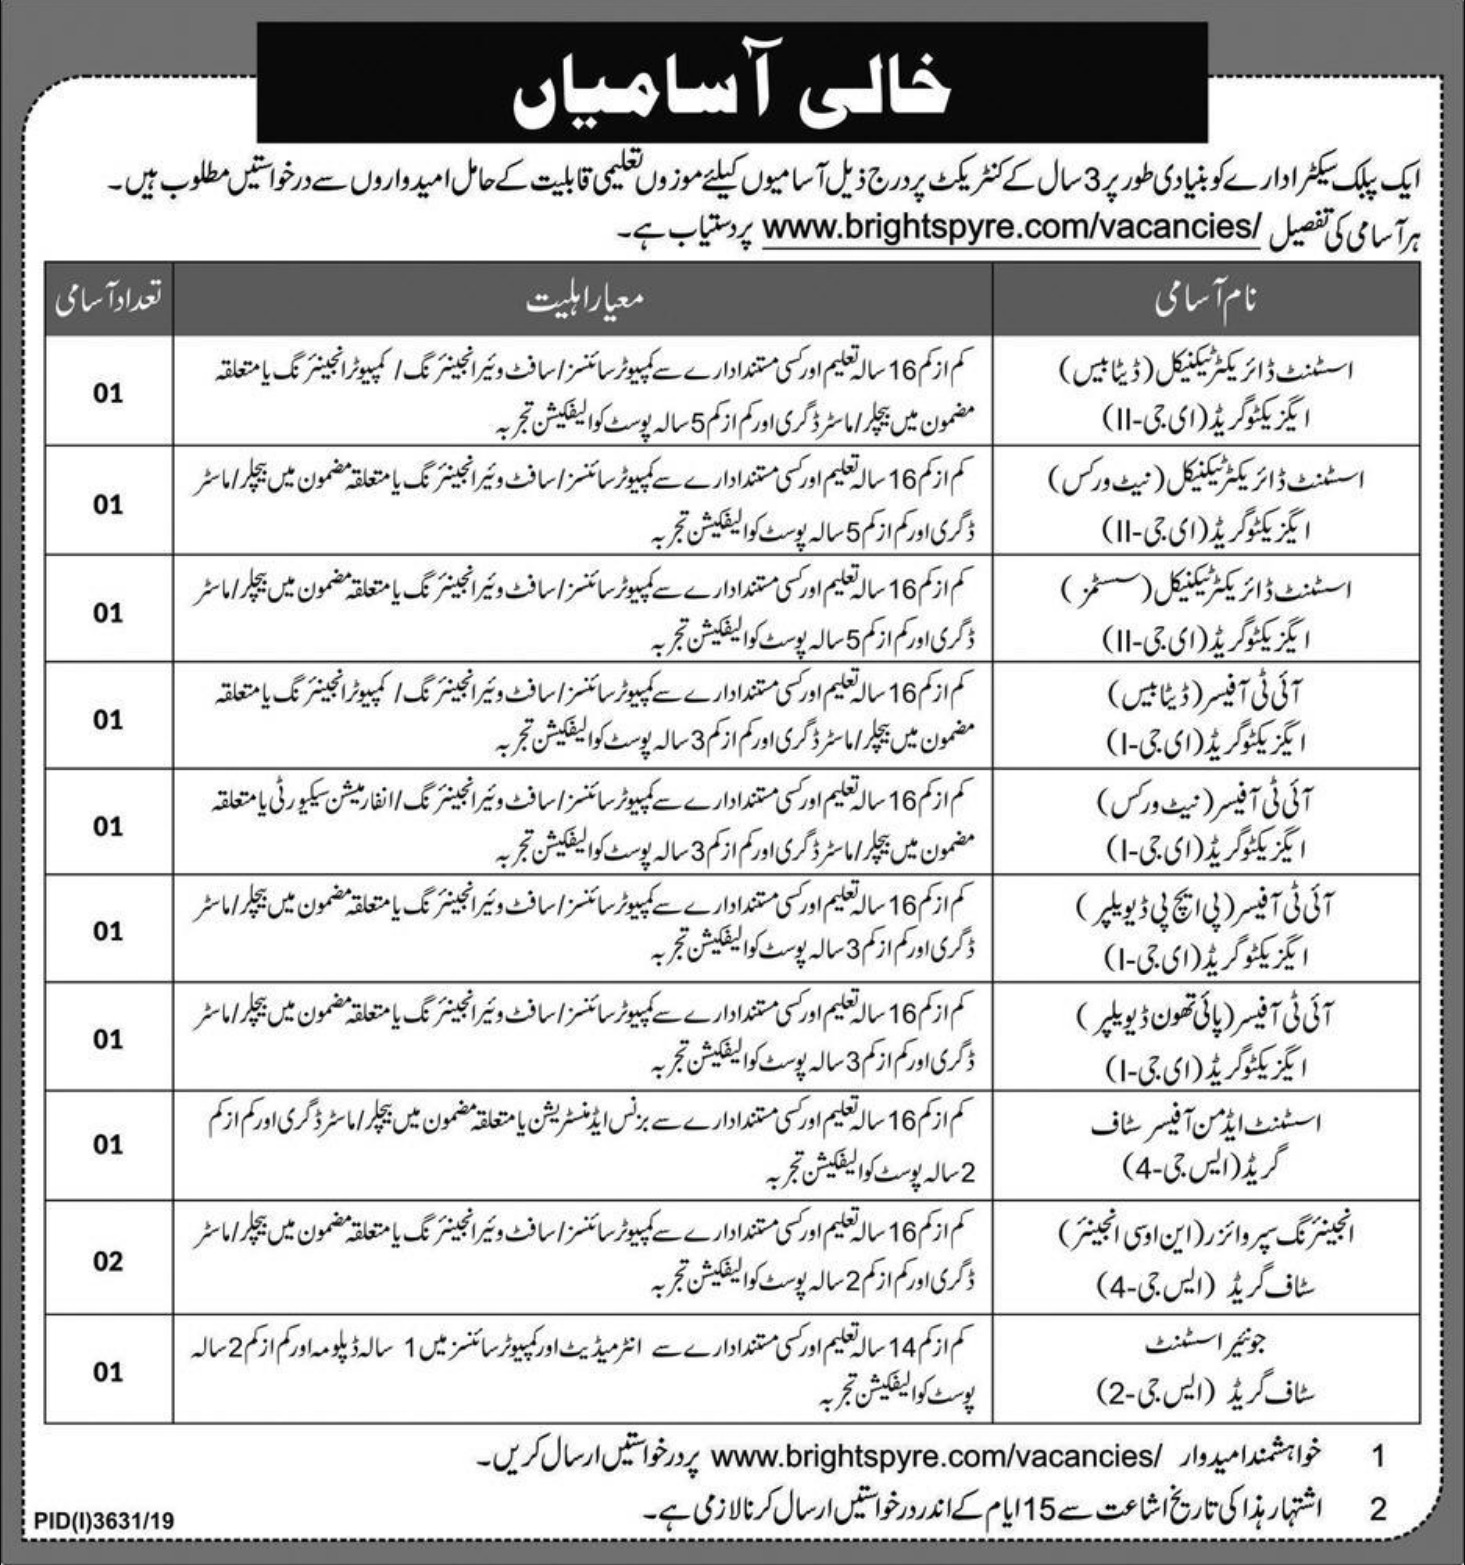 Public Sector Organization Jobs 2020 Pakistan